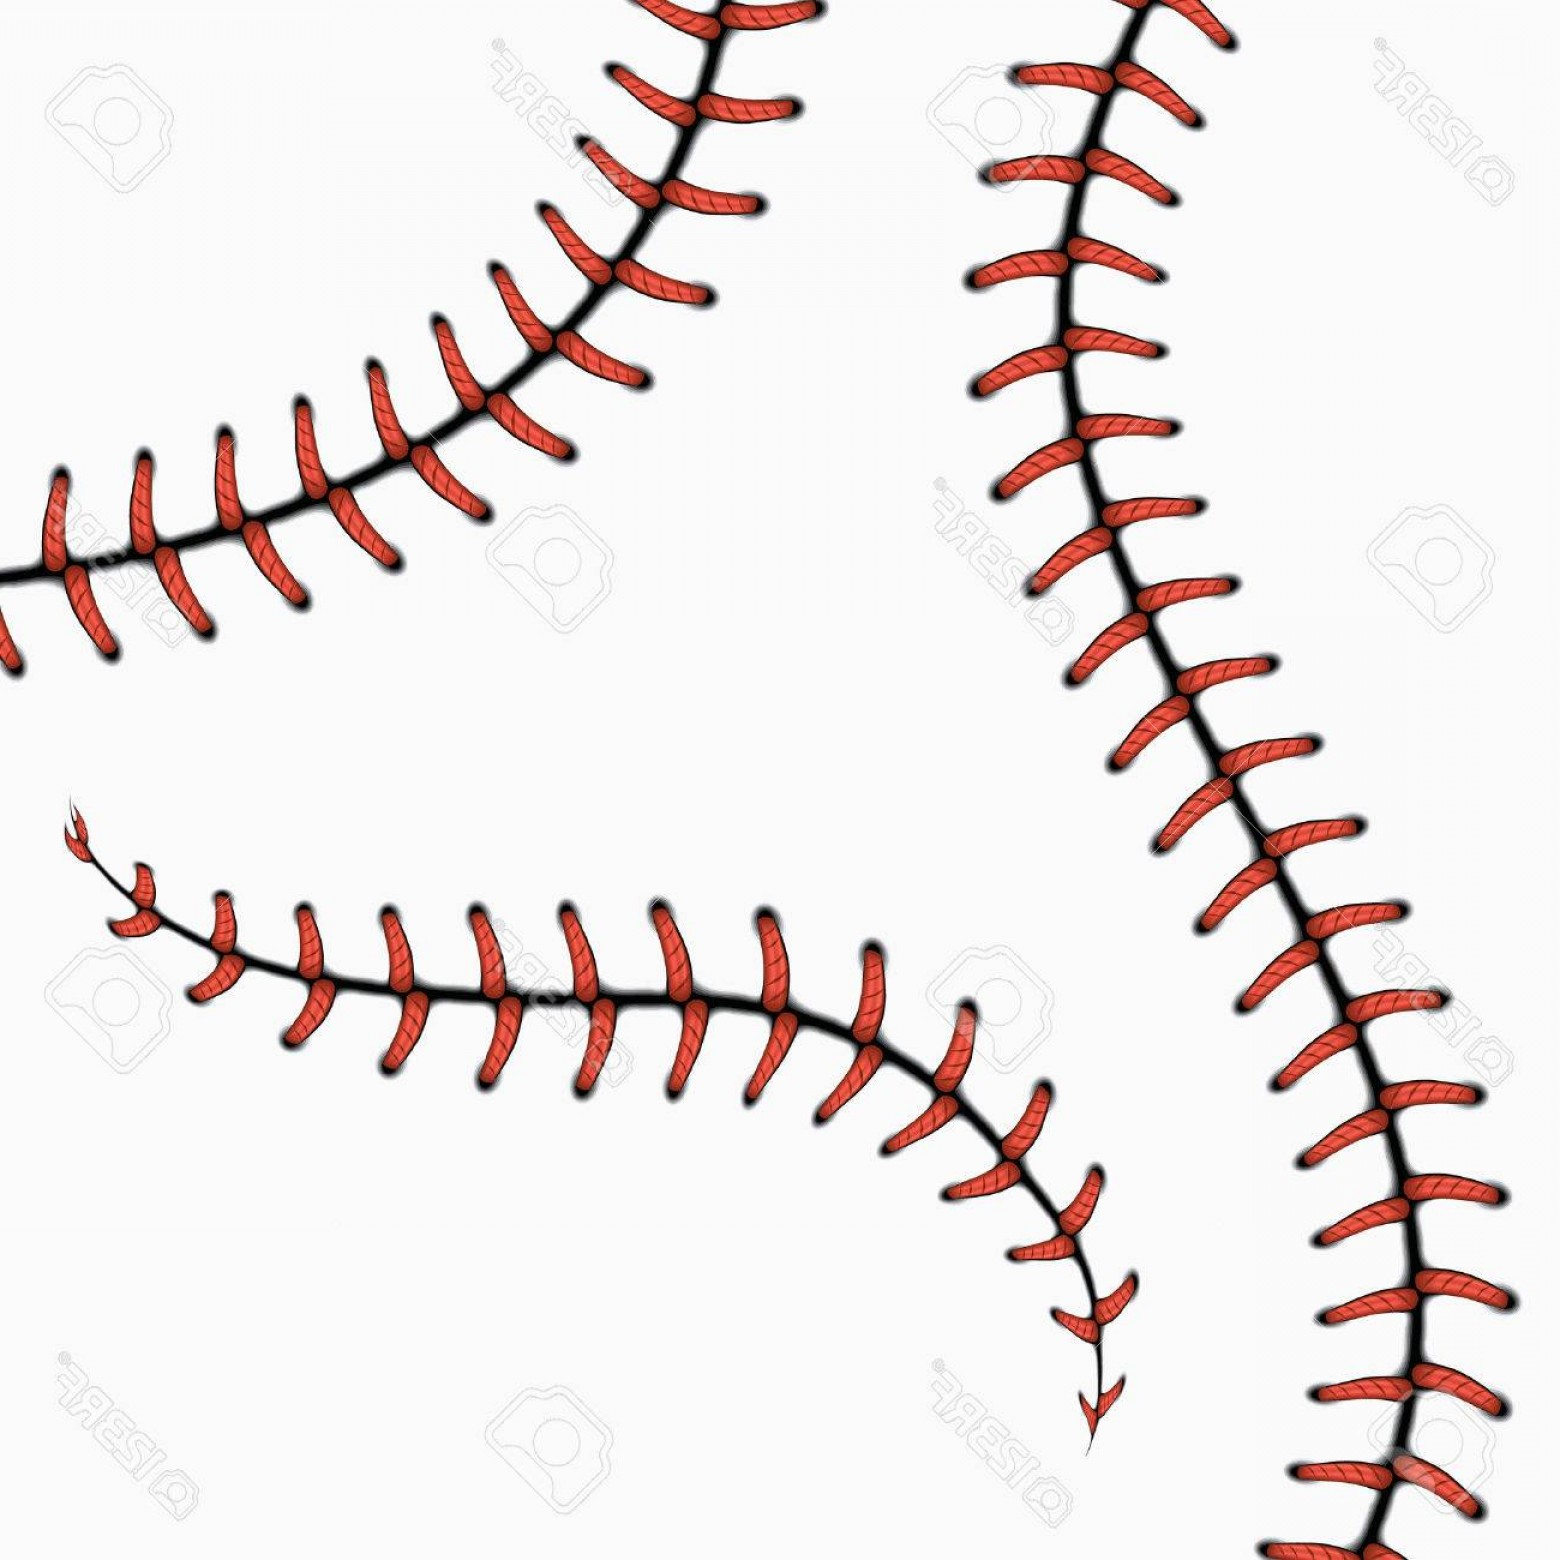 Laces Basball Vector: Photostock Vector Baseball Stitches Softball Laces Isolated On White Vector Set Red Stitch For Ball Line Curve Seam St